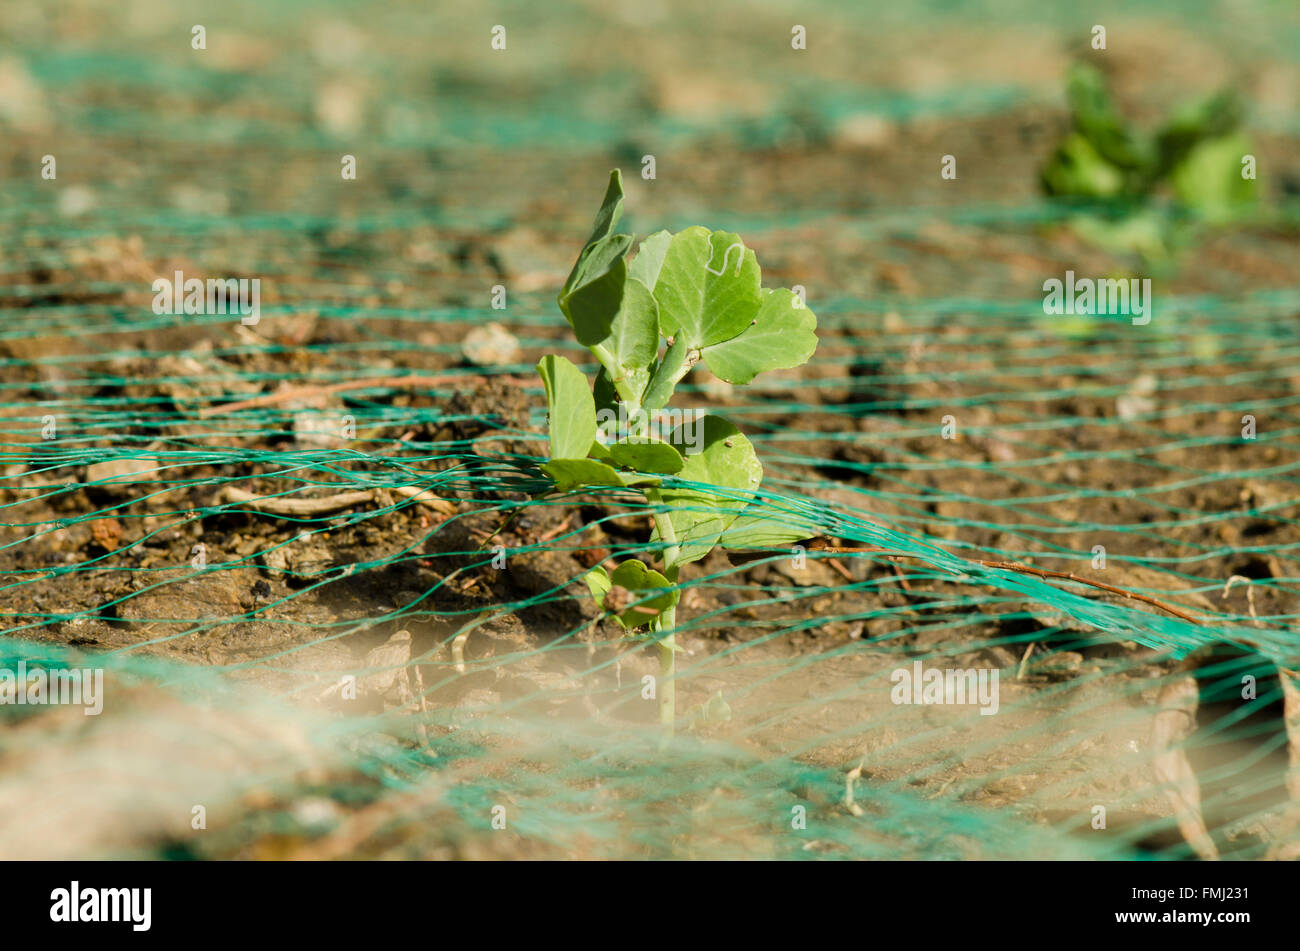 Young Pea Plant Pisum Sativum Sticking Out Of Anti bird Netting